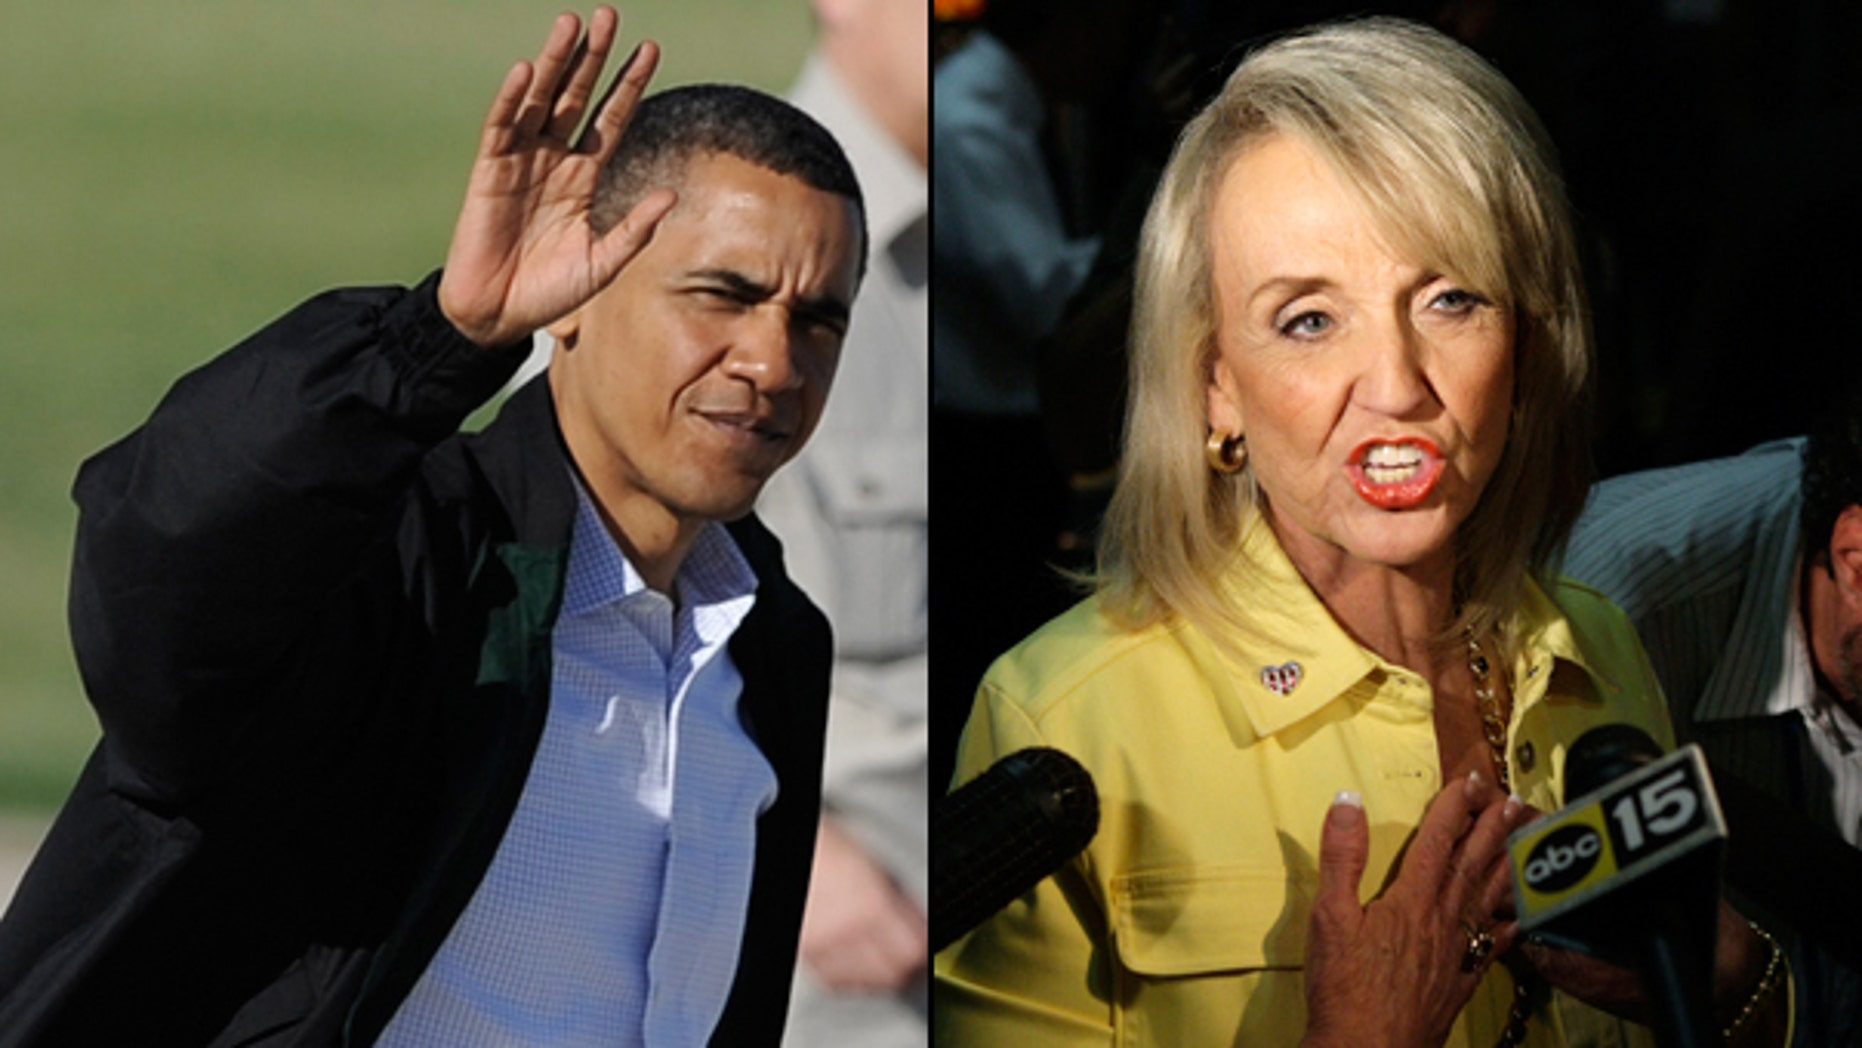 A federal judge on Wednesday blocked the most controversial parts of Arizona's immigration law from taking effect, delivering a last-minute victory to President Obama and other opponents of the crackdown and a setback for Gov. Jan Brewer other supporters. (AP)